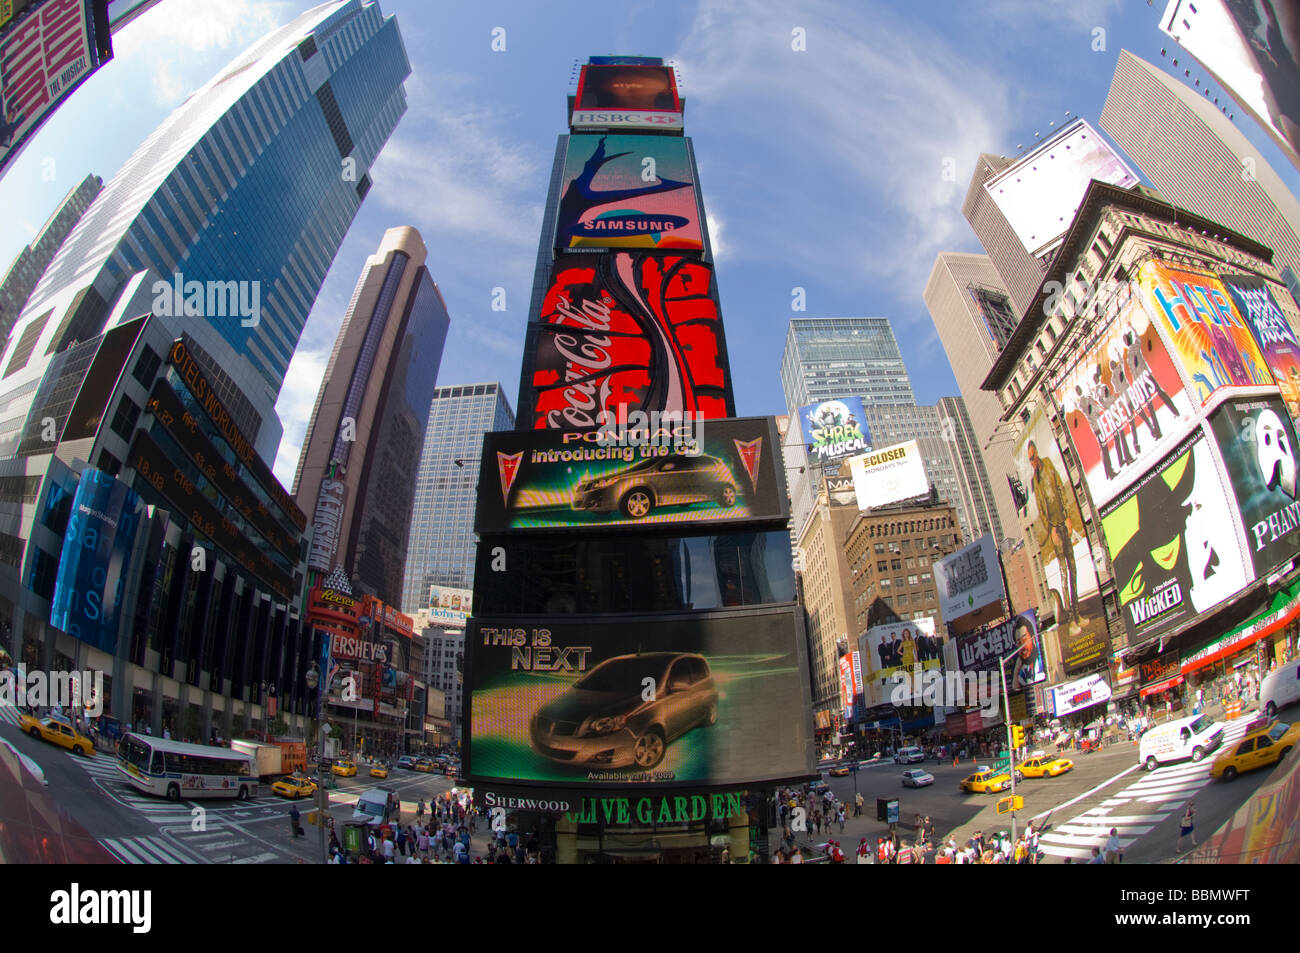 Pontiac a General Motors brand advertises its new G3 car on a billboard in Times Square - Stock Image